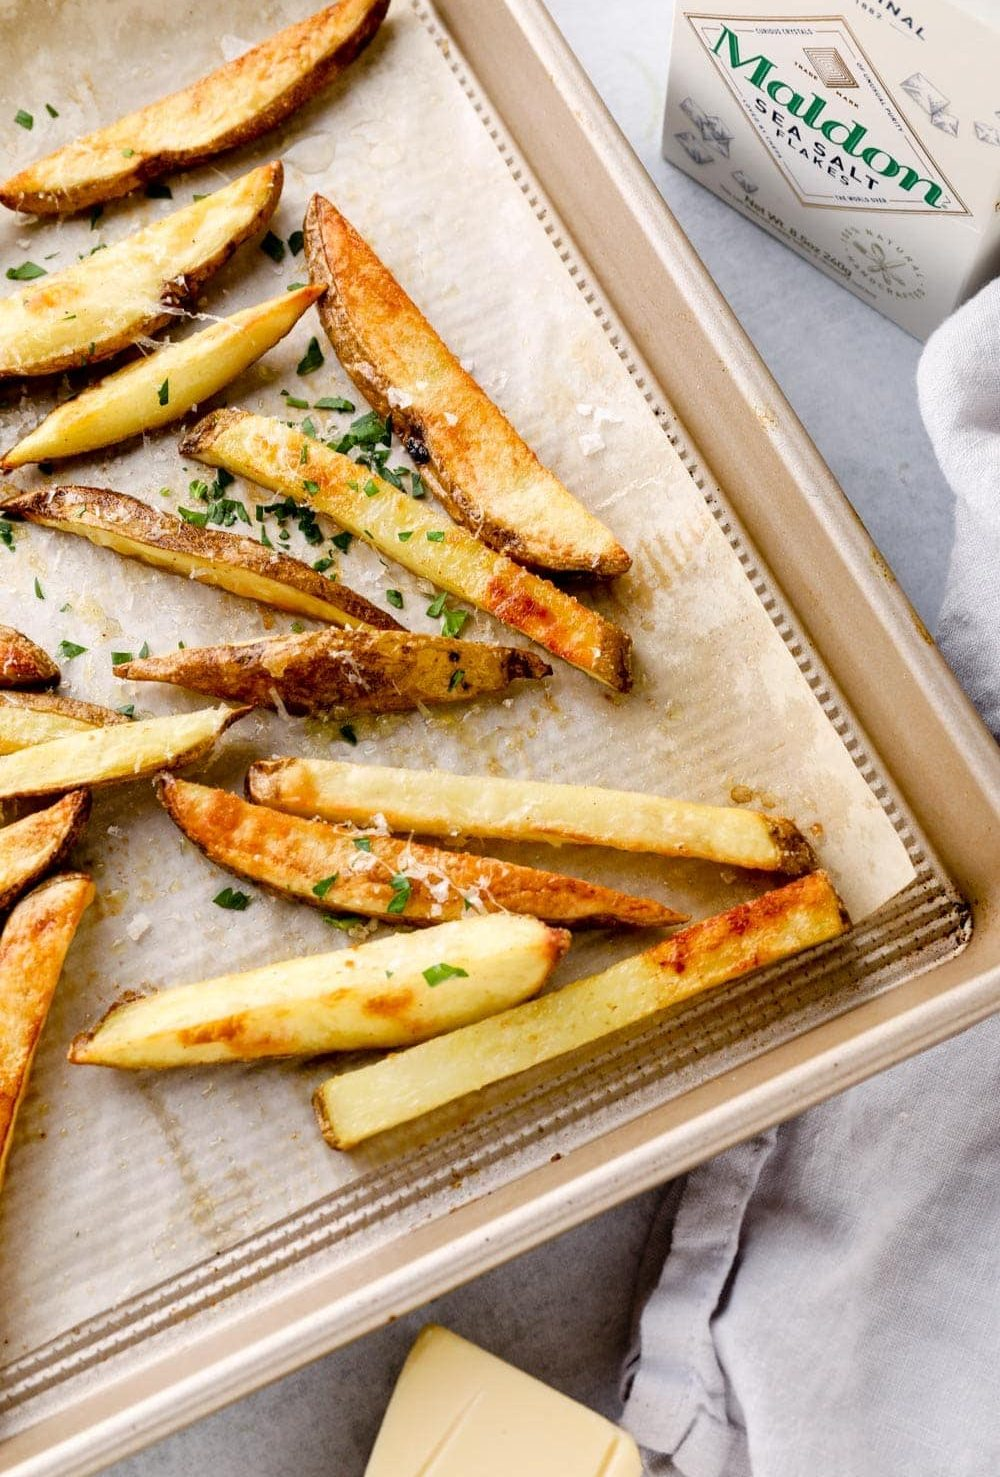 Truffle fries on a sheet pan with flaky maldon salt.